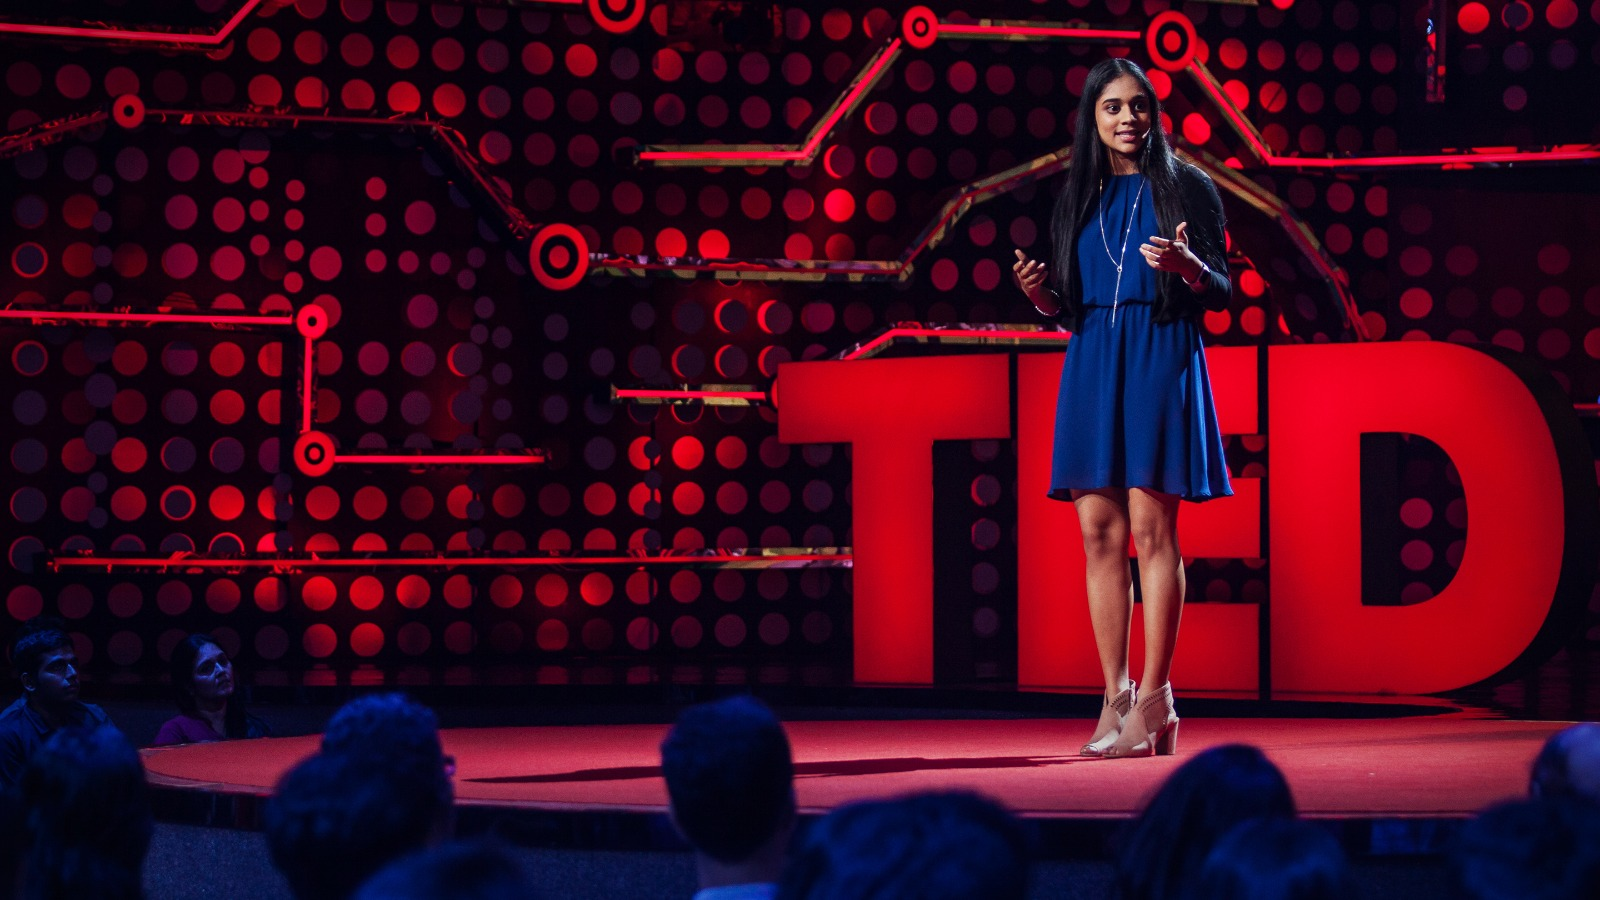 "<a href=""https://www.haselt.com/blog/the-ted-software-engineers-recommend-their-favorite-ted-talks"" target=""_blank"" rel=""noopener noreferrer nofollow"">Источник</a>"